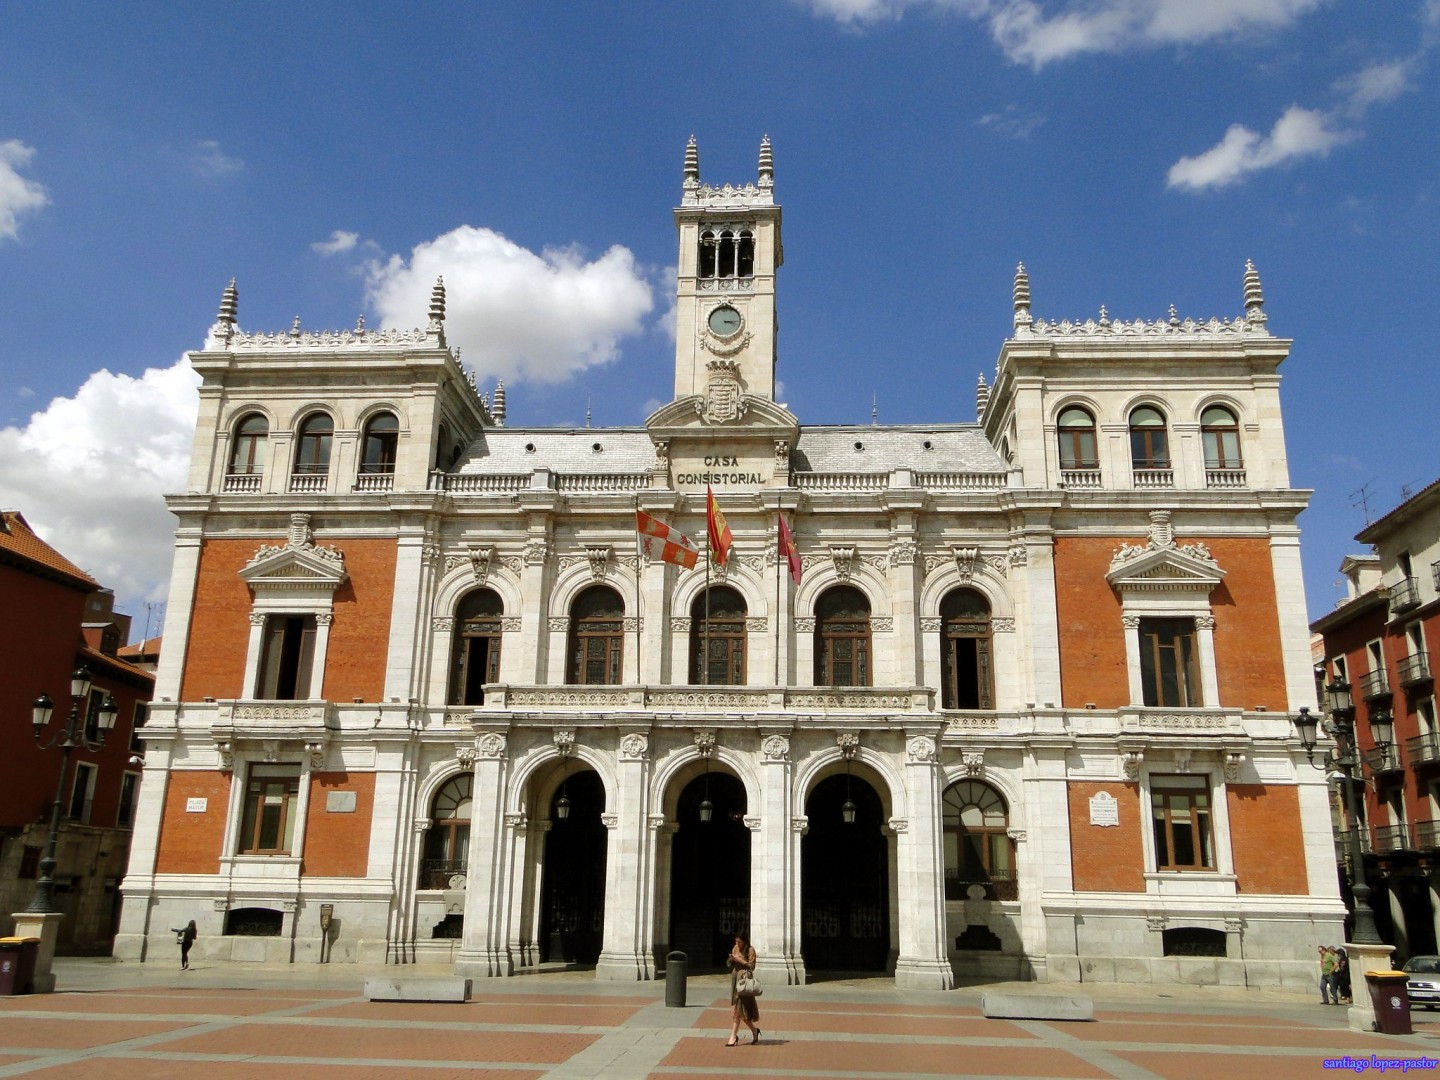 Natixis and the EIB will co-sponsor plants in the provinces of Valladolid (pictured), Salamanca, Cáceres, Huesca and Seville. Image credit: Santiago López Pastor / Flickr